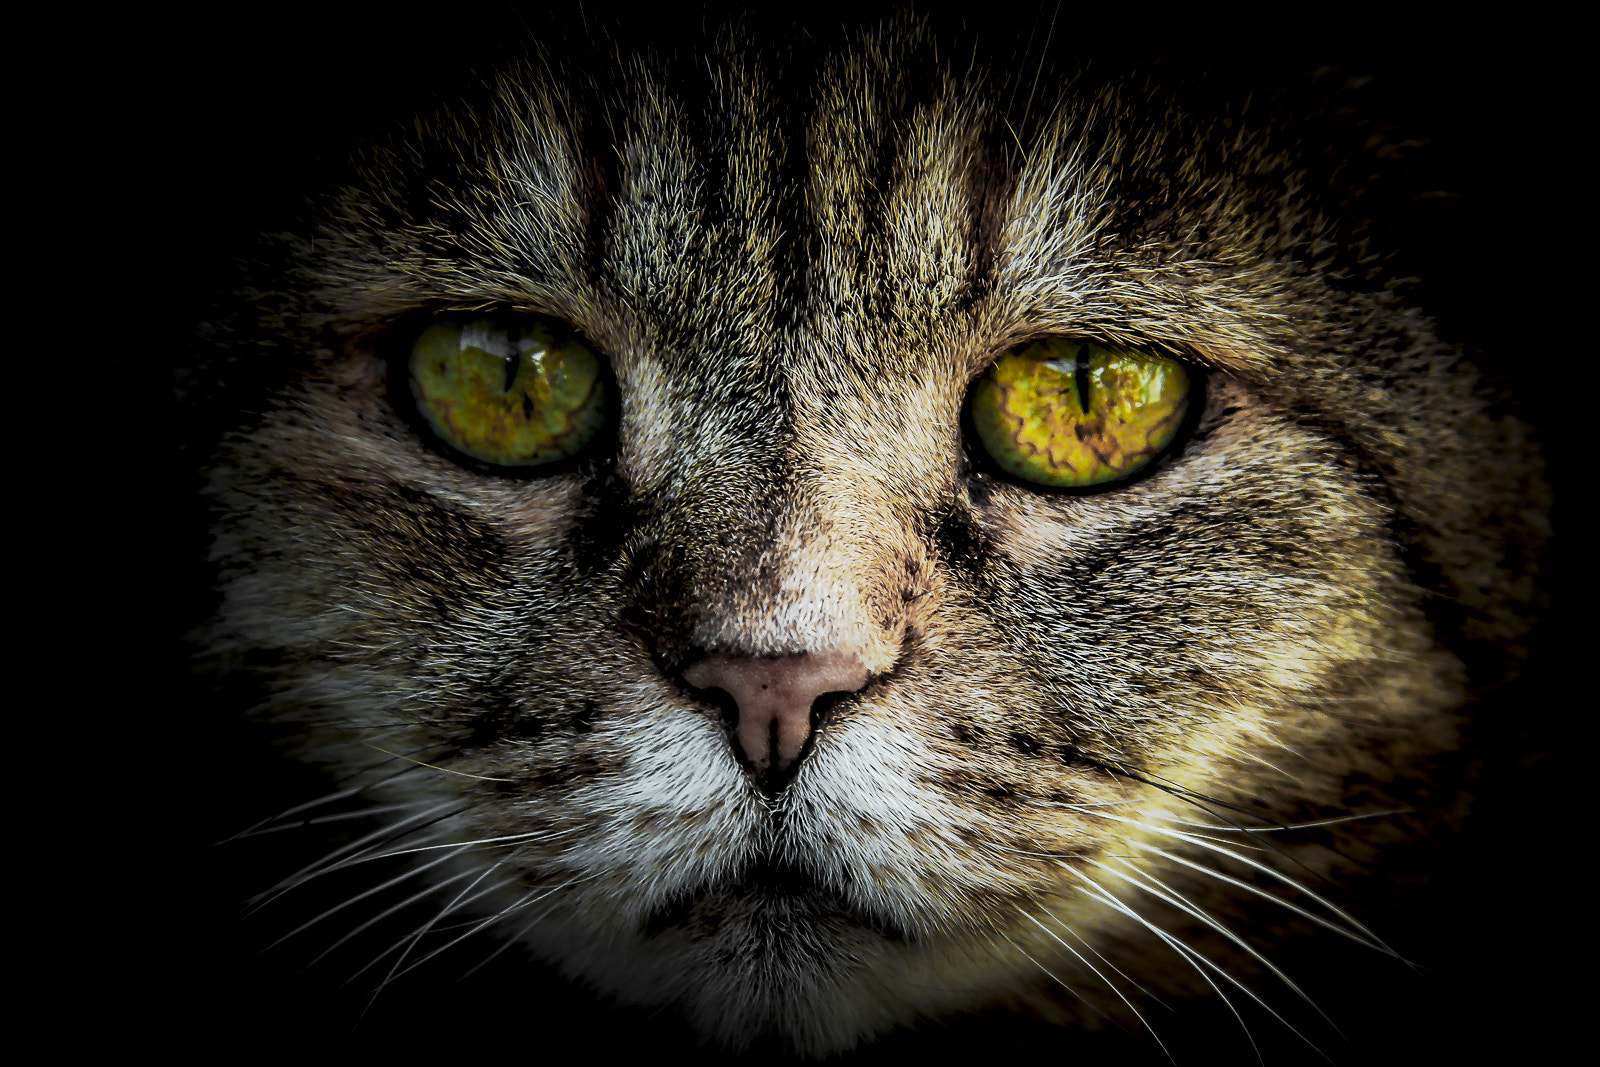 Photograph Cat by Donato Romagnuolo on 500px